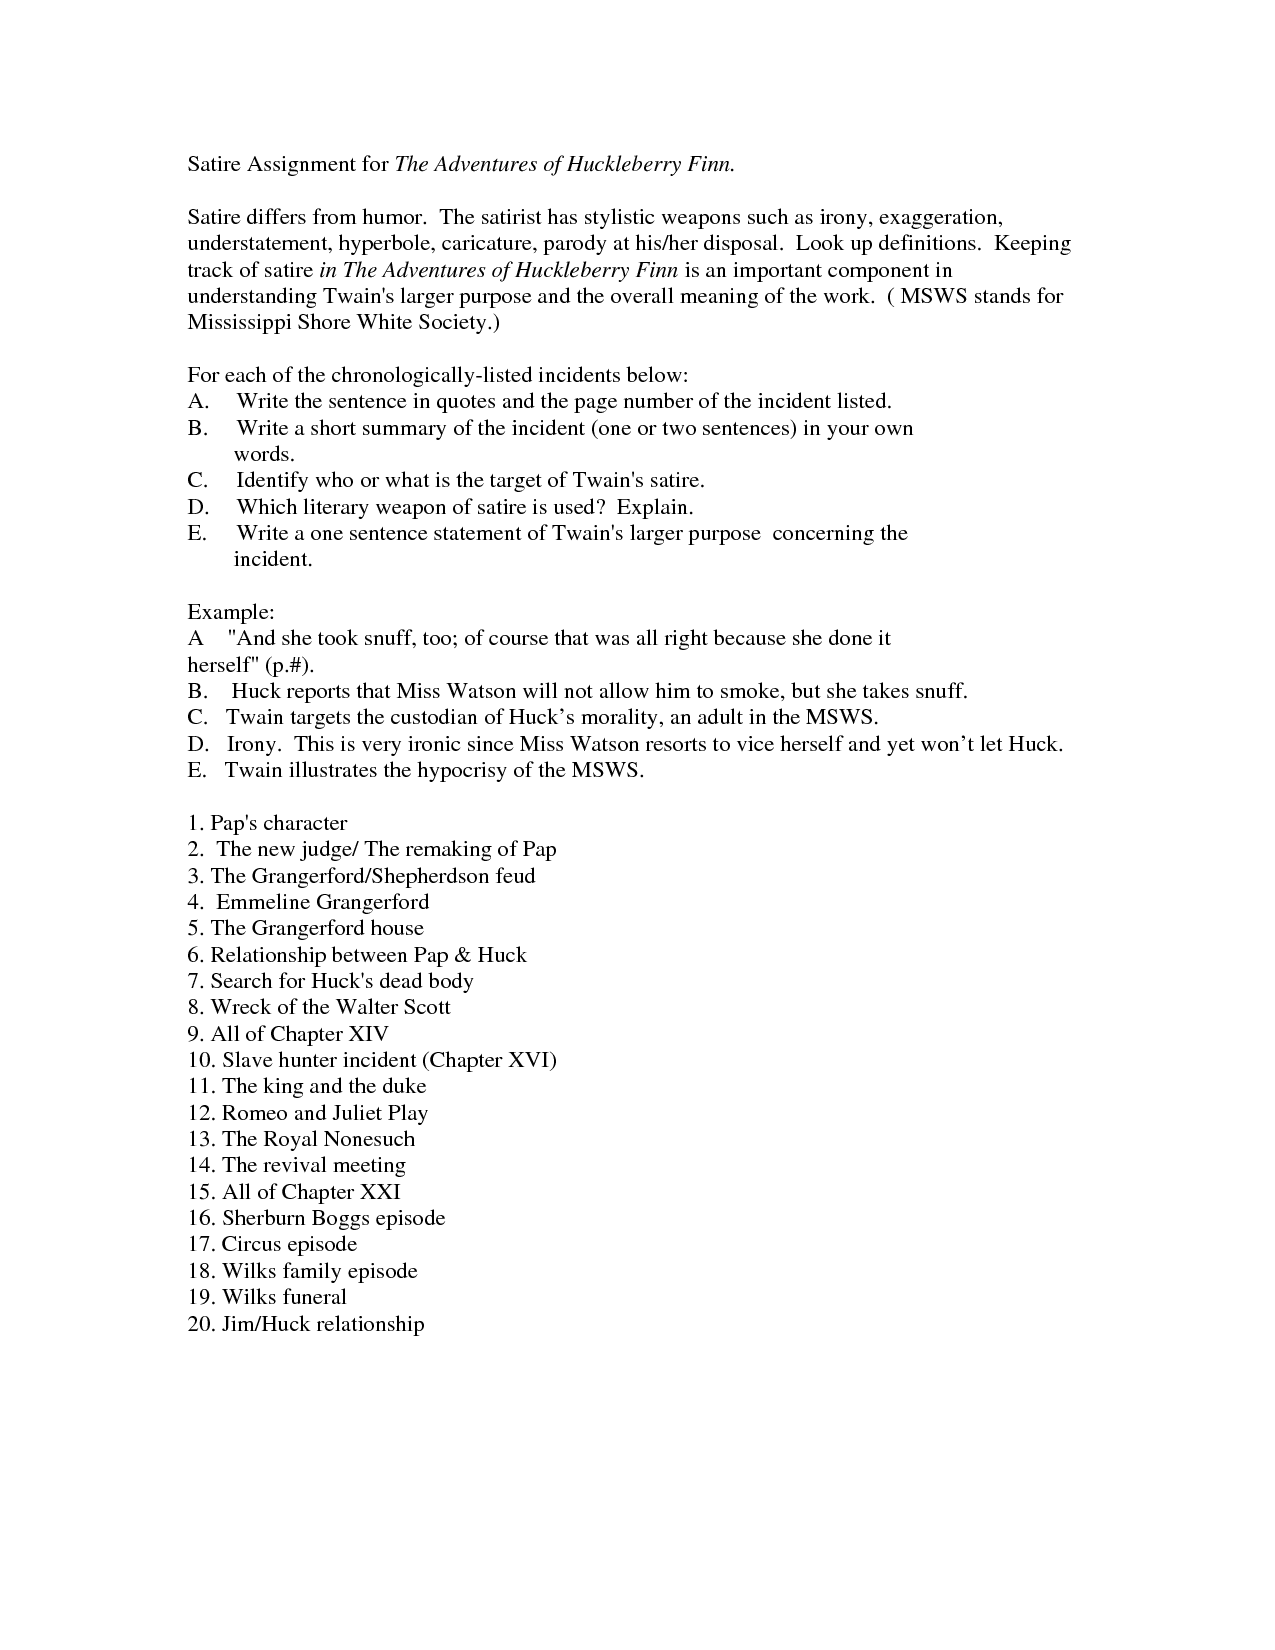 irony in huck finn Satire in adventures of huckleberry finn study guide by nhinnah_vo includes 14 questions covering vocabulary, terms and more quizlet flashcards, activities and games help you improve your grades  huckleberry finn satire and irony 13 terms satire huckleberry finn 20 terms huck finn characters, motifs, themes 64 terms.